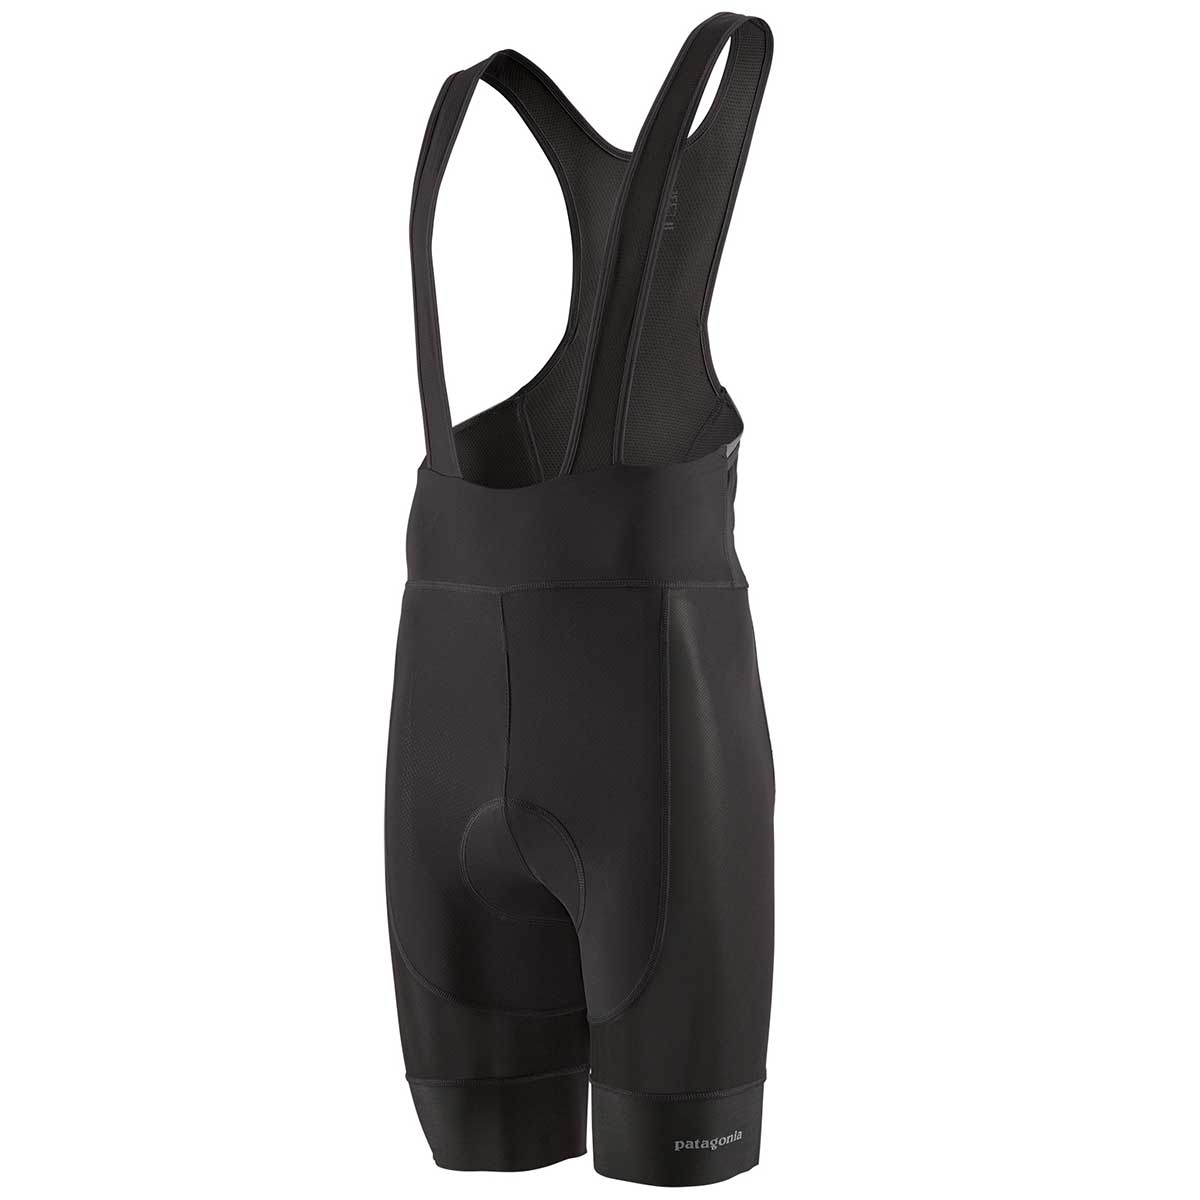 Patagonia men's Endless Ride Liner Bibs in Black front view